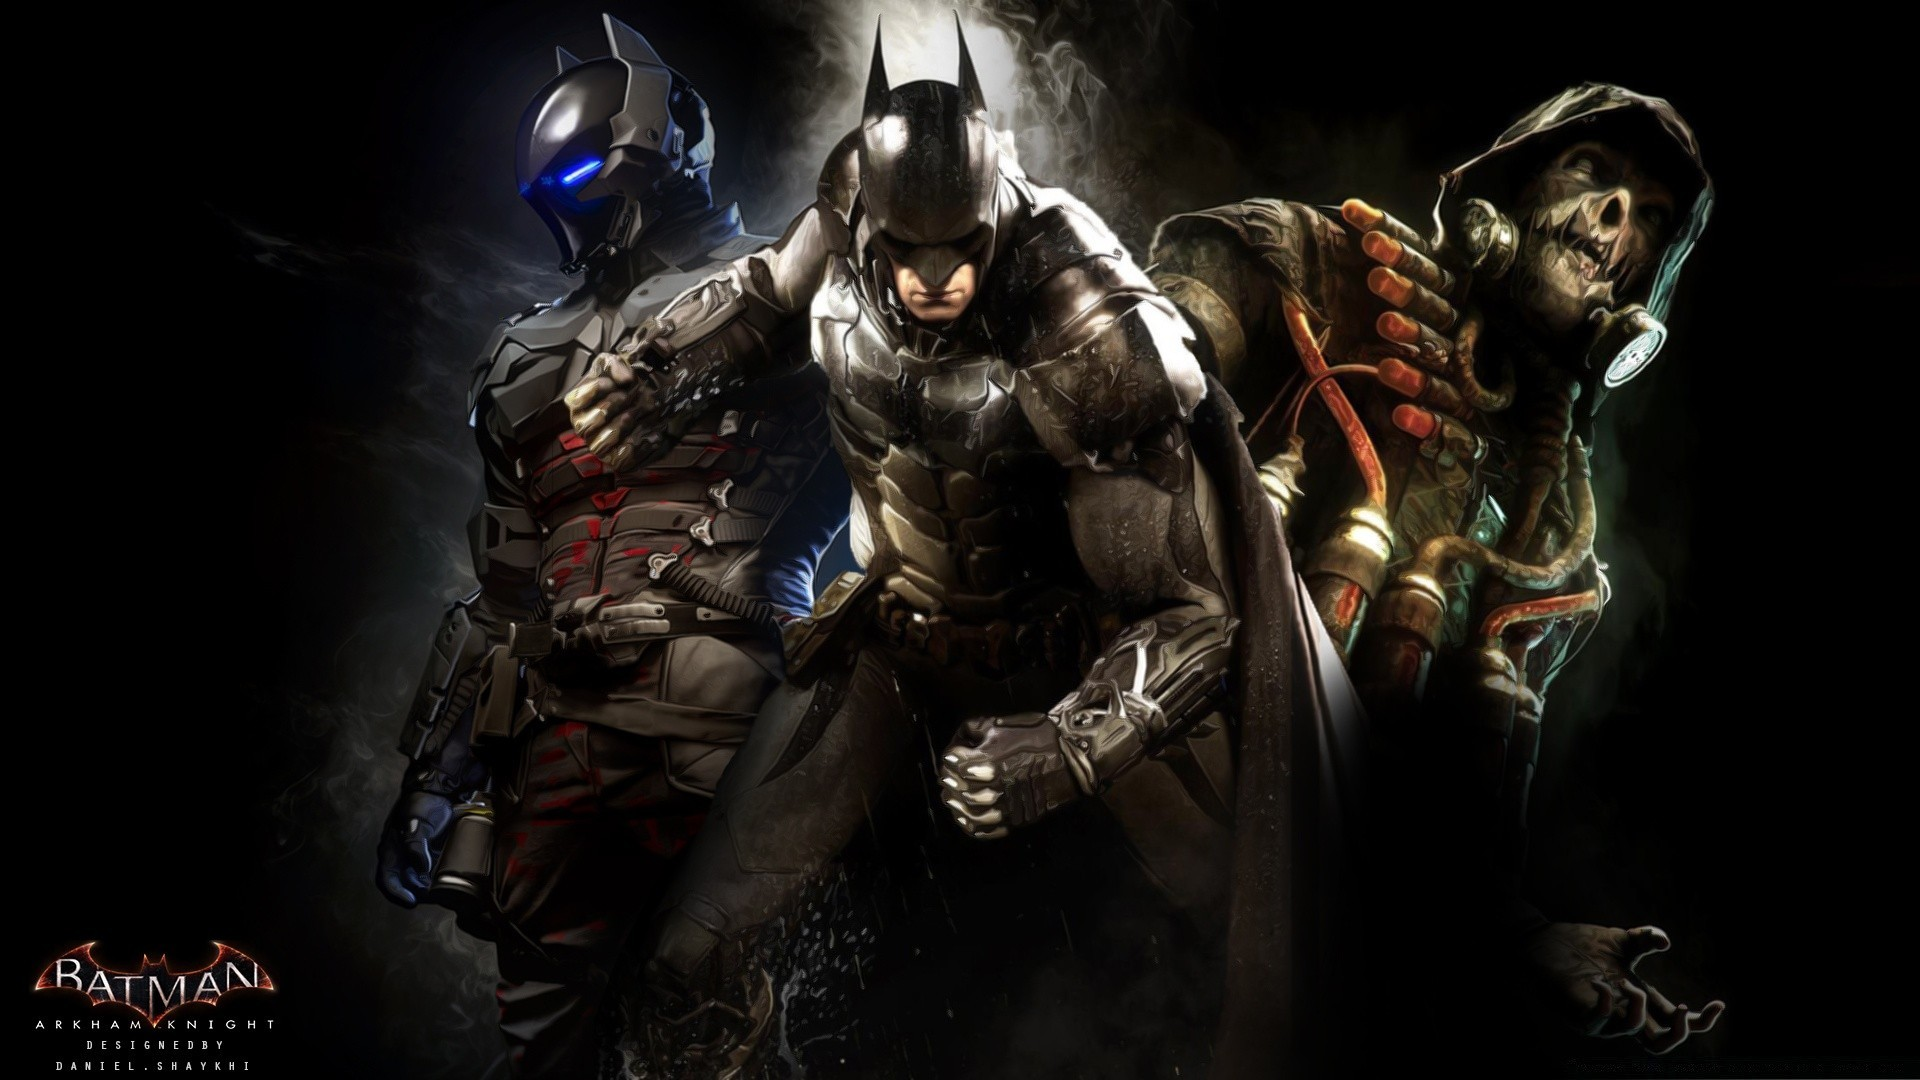 Batman Arkham Knight IPhone Wallpapers For Free